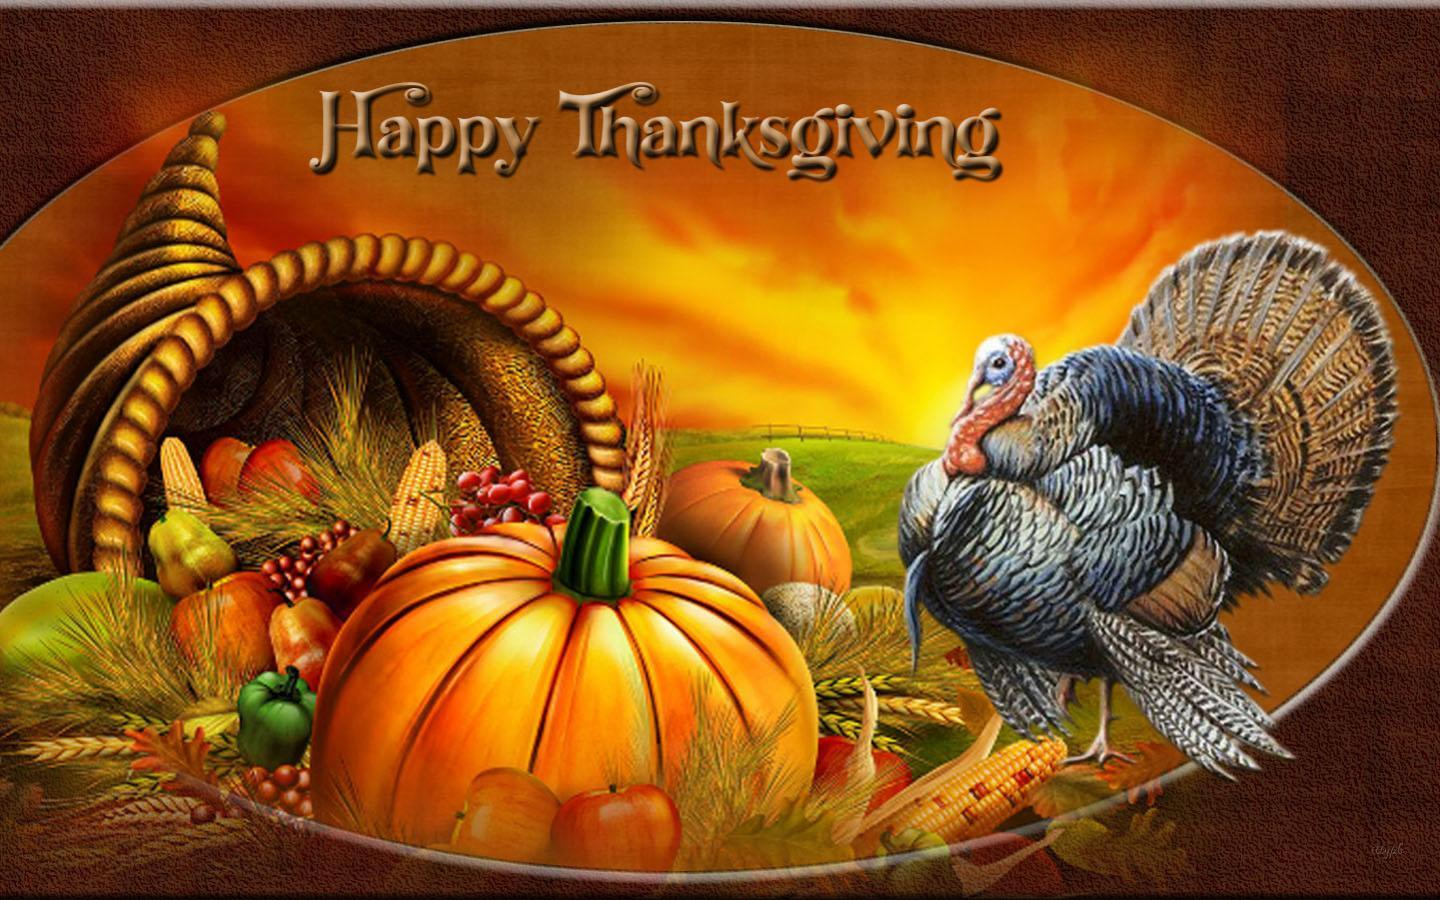 Happy Thanksgiving Wallpapers for Android   APK Download 1440x900